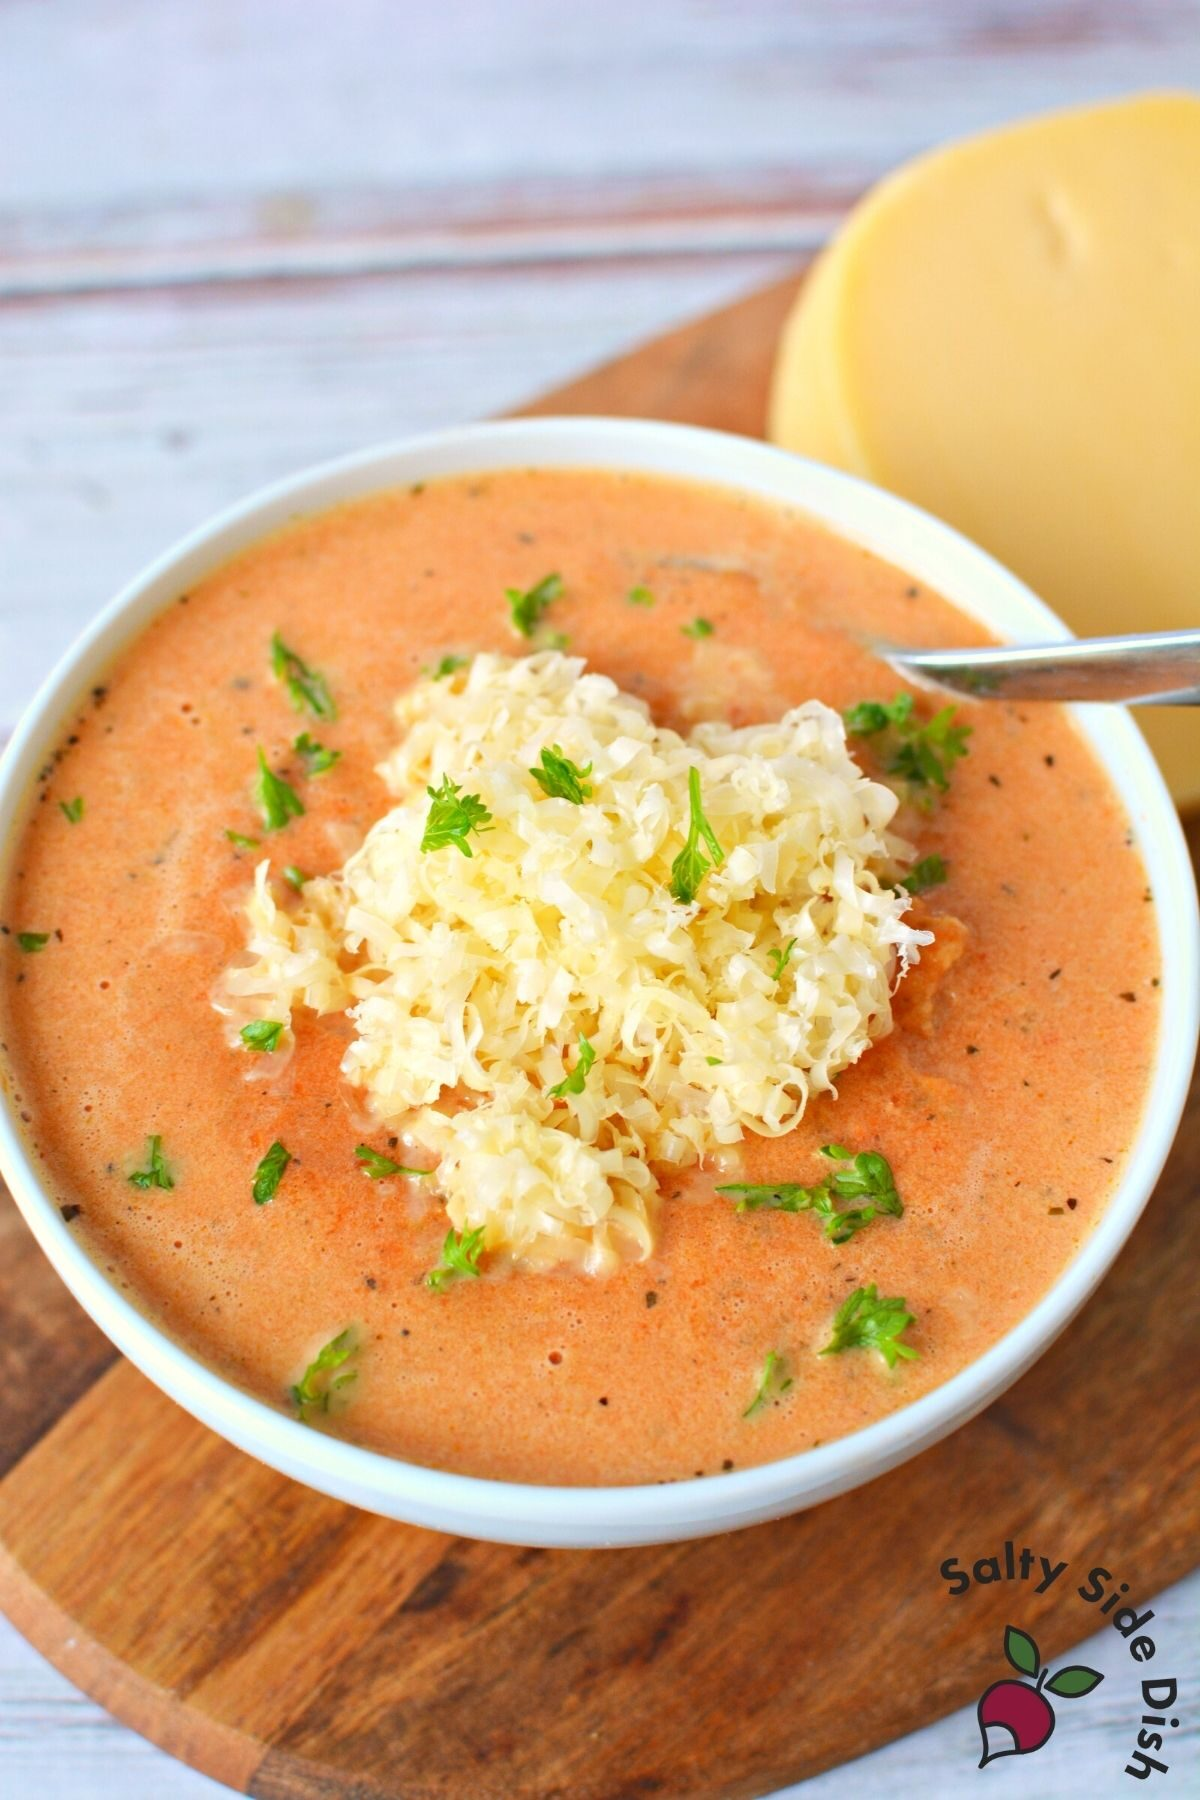 red pepper gouda soup in a white bowl.